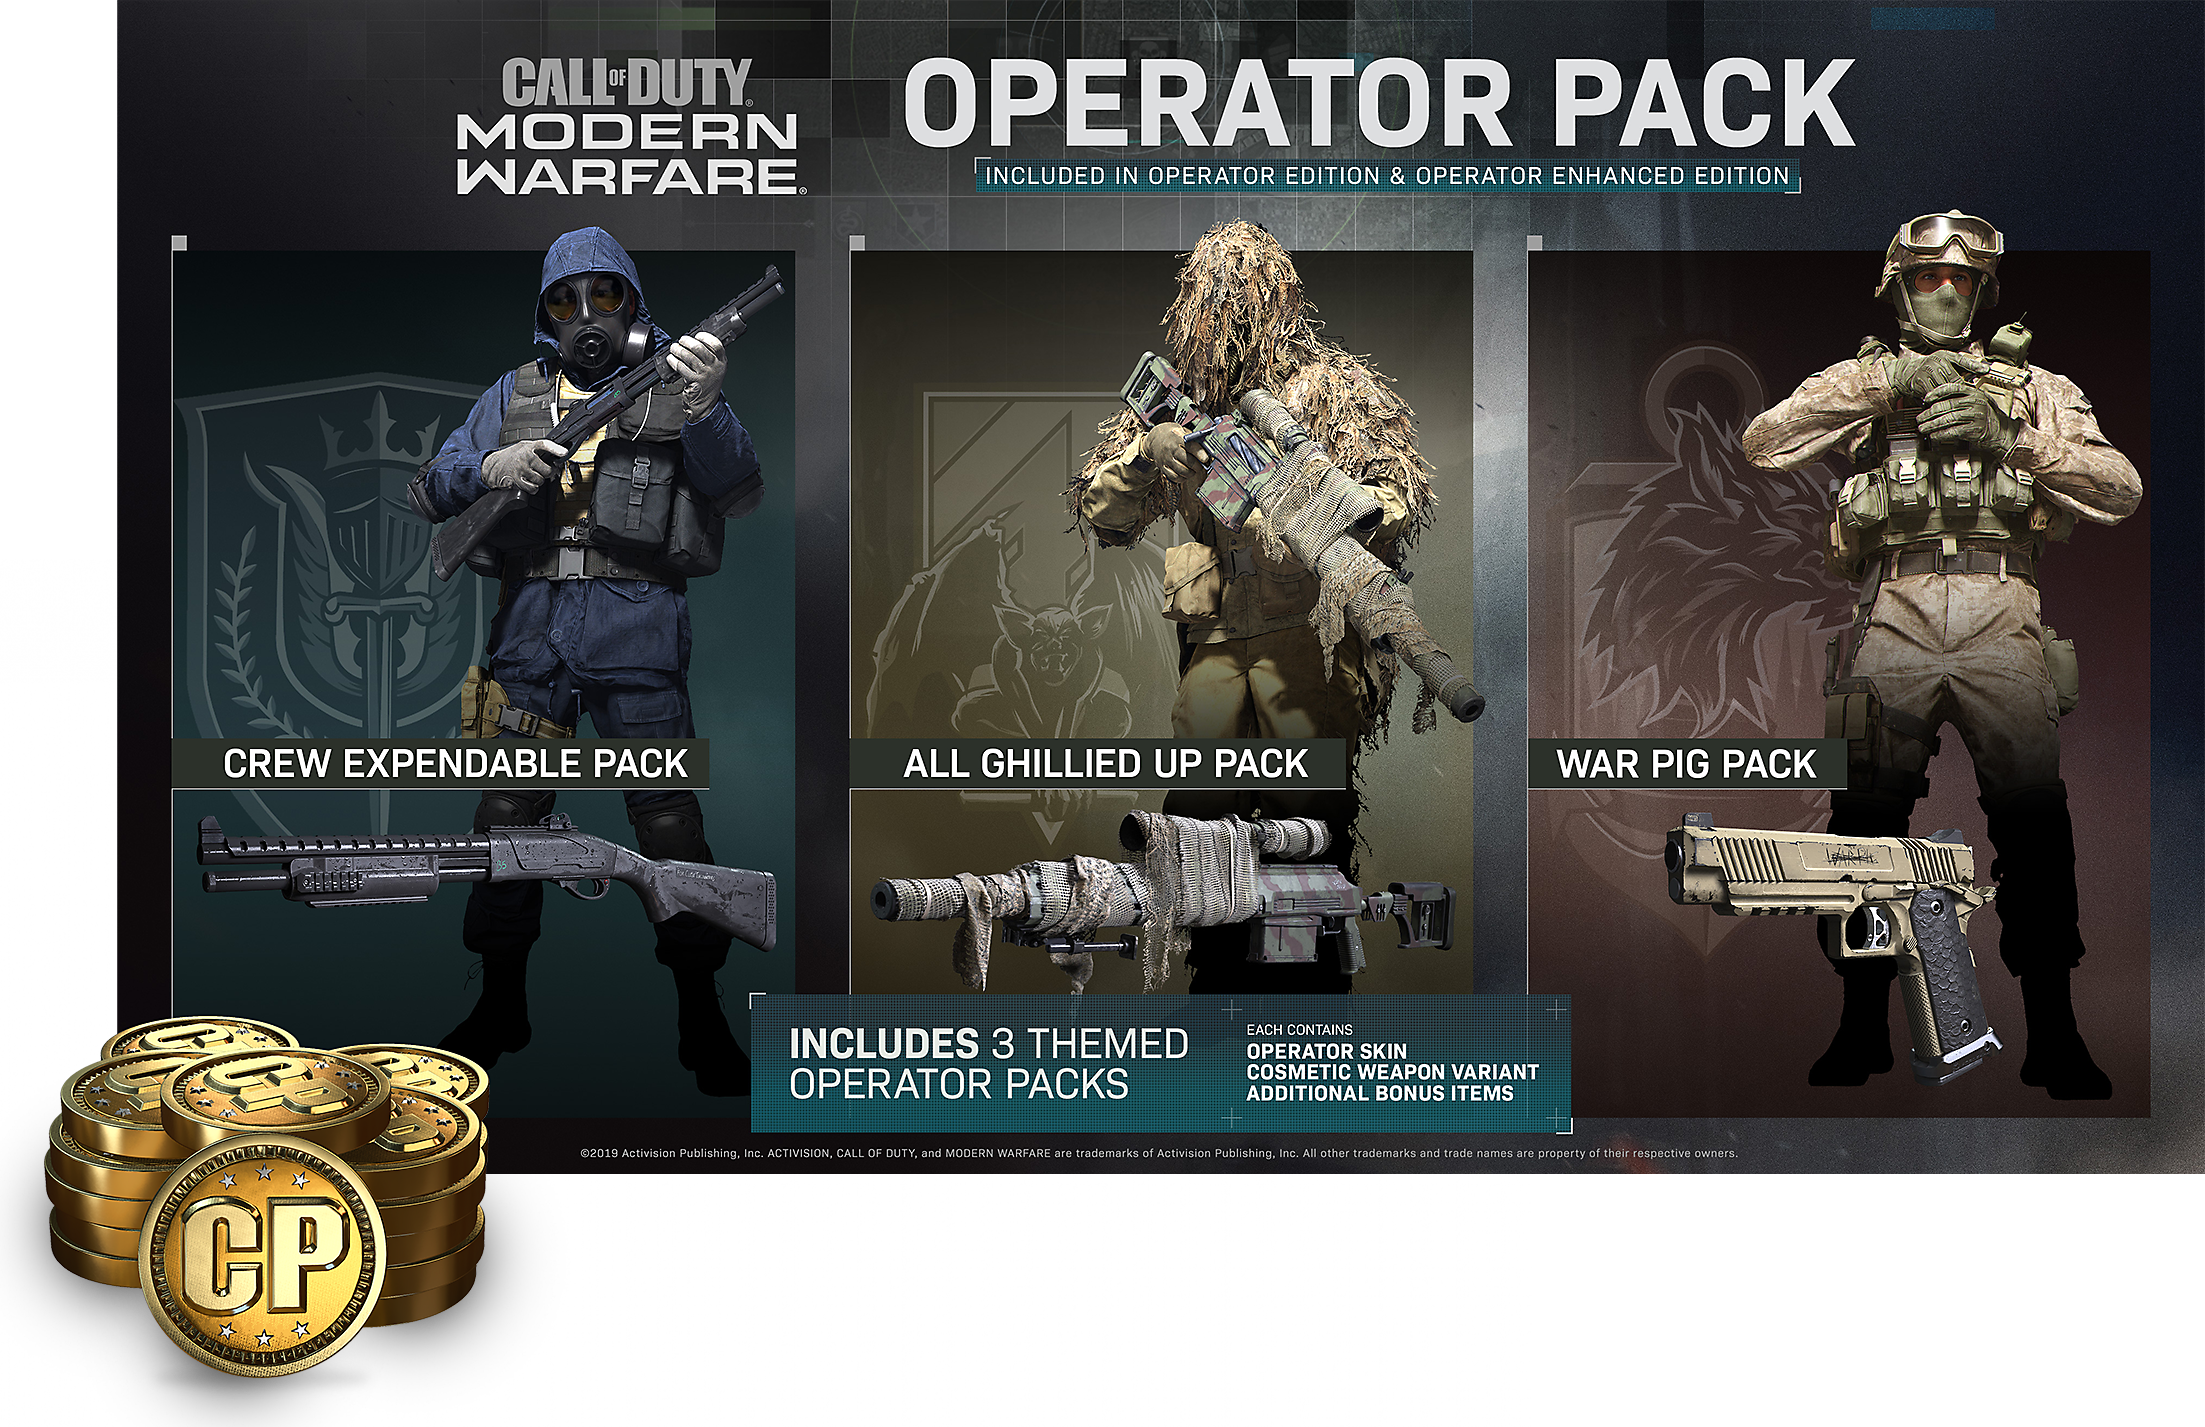 Call of Duty Modern Warfare Enhanced Edition Operator Pack